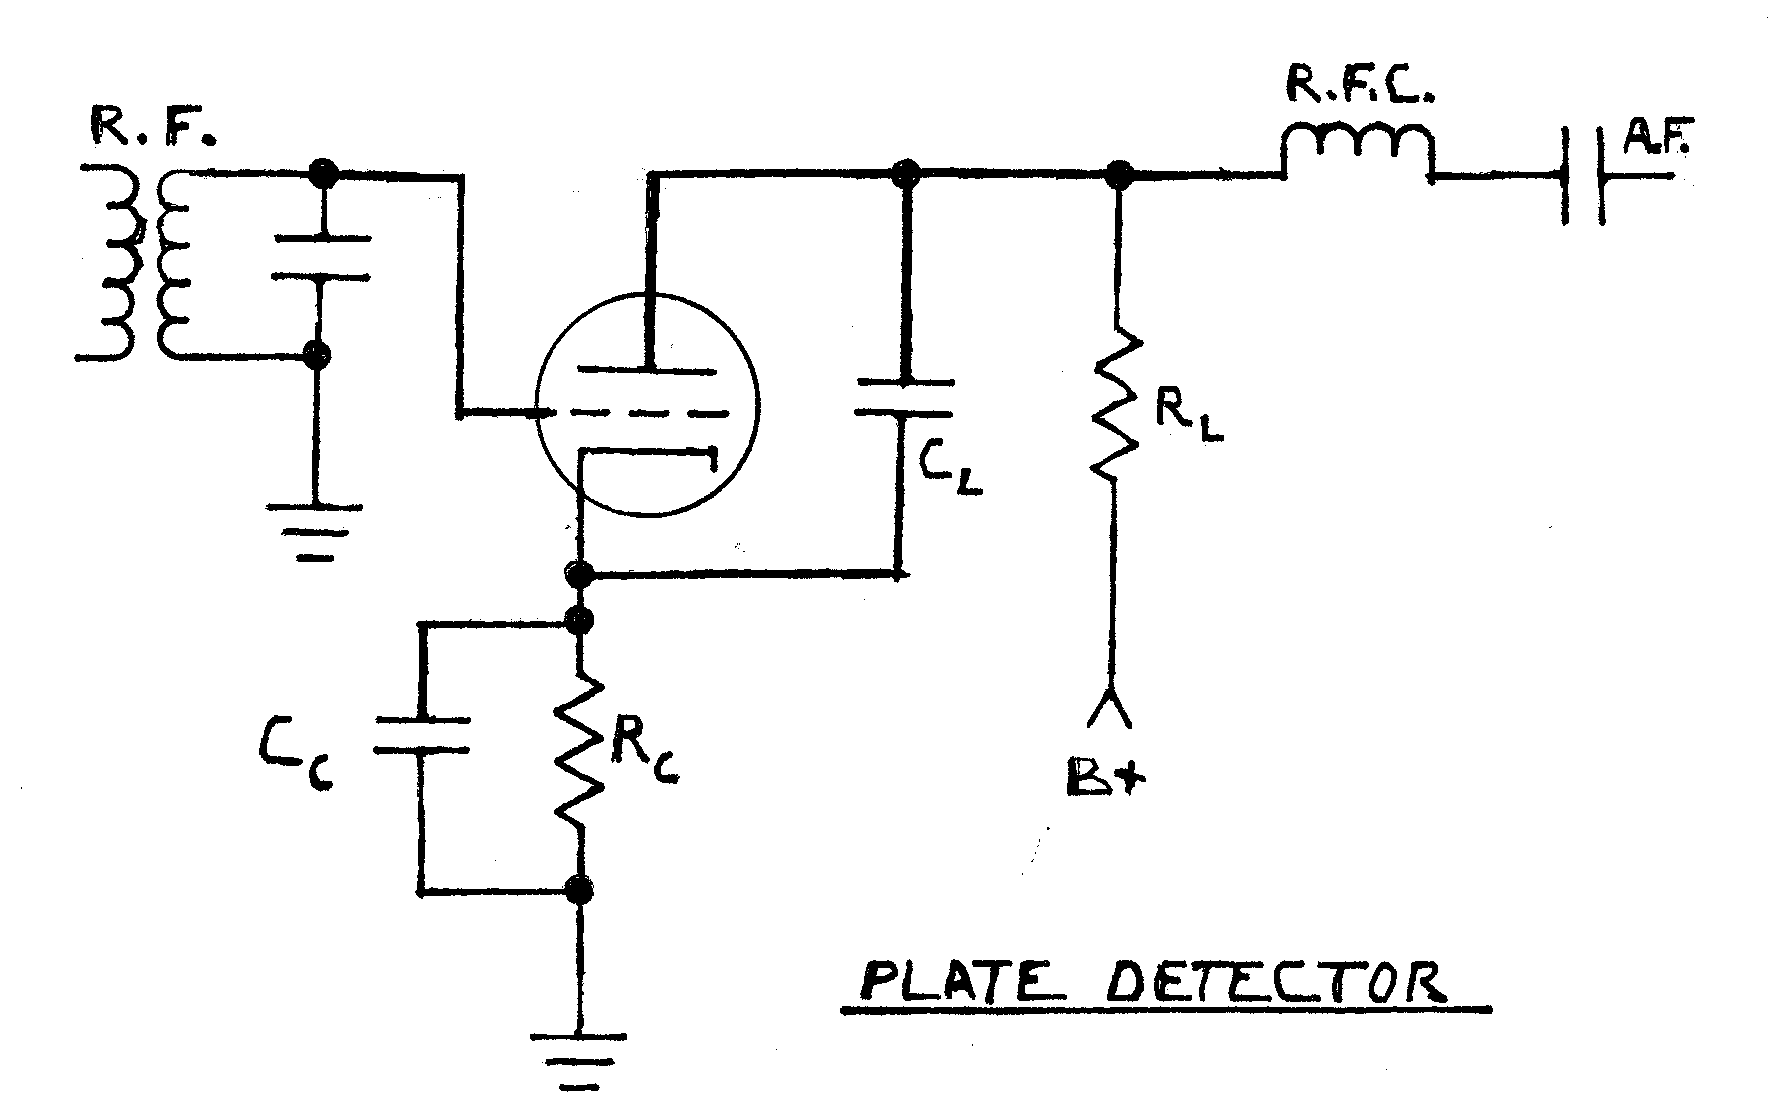 hight resolution of file vacuum tube plate detector schematic diagram drawn by eric vacuum tube schematic diagram file vacuum